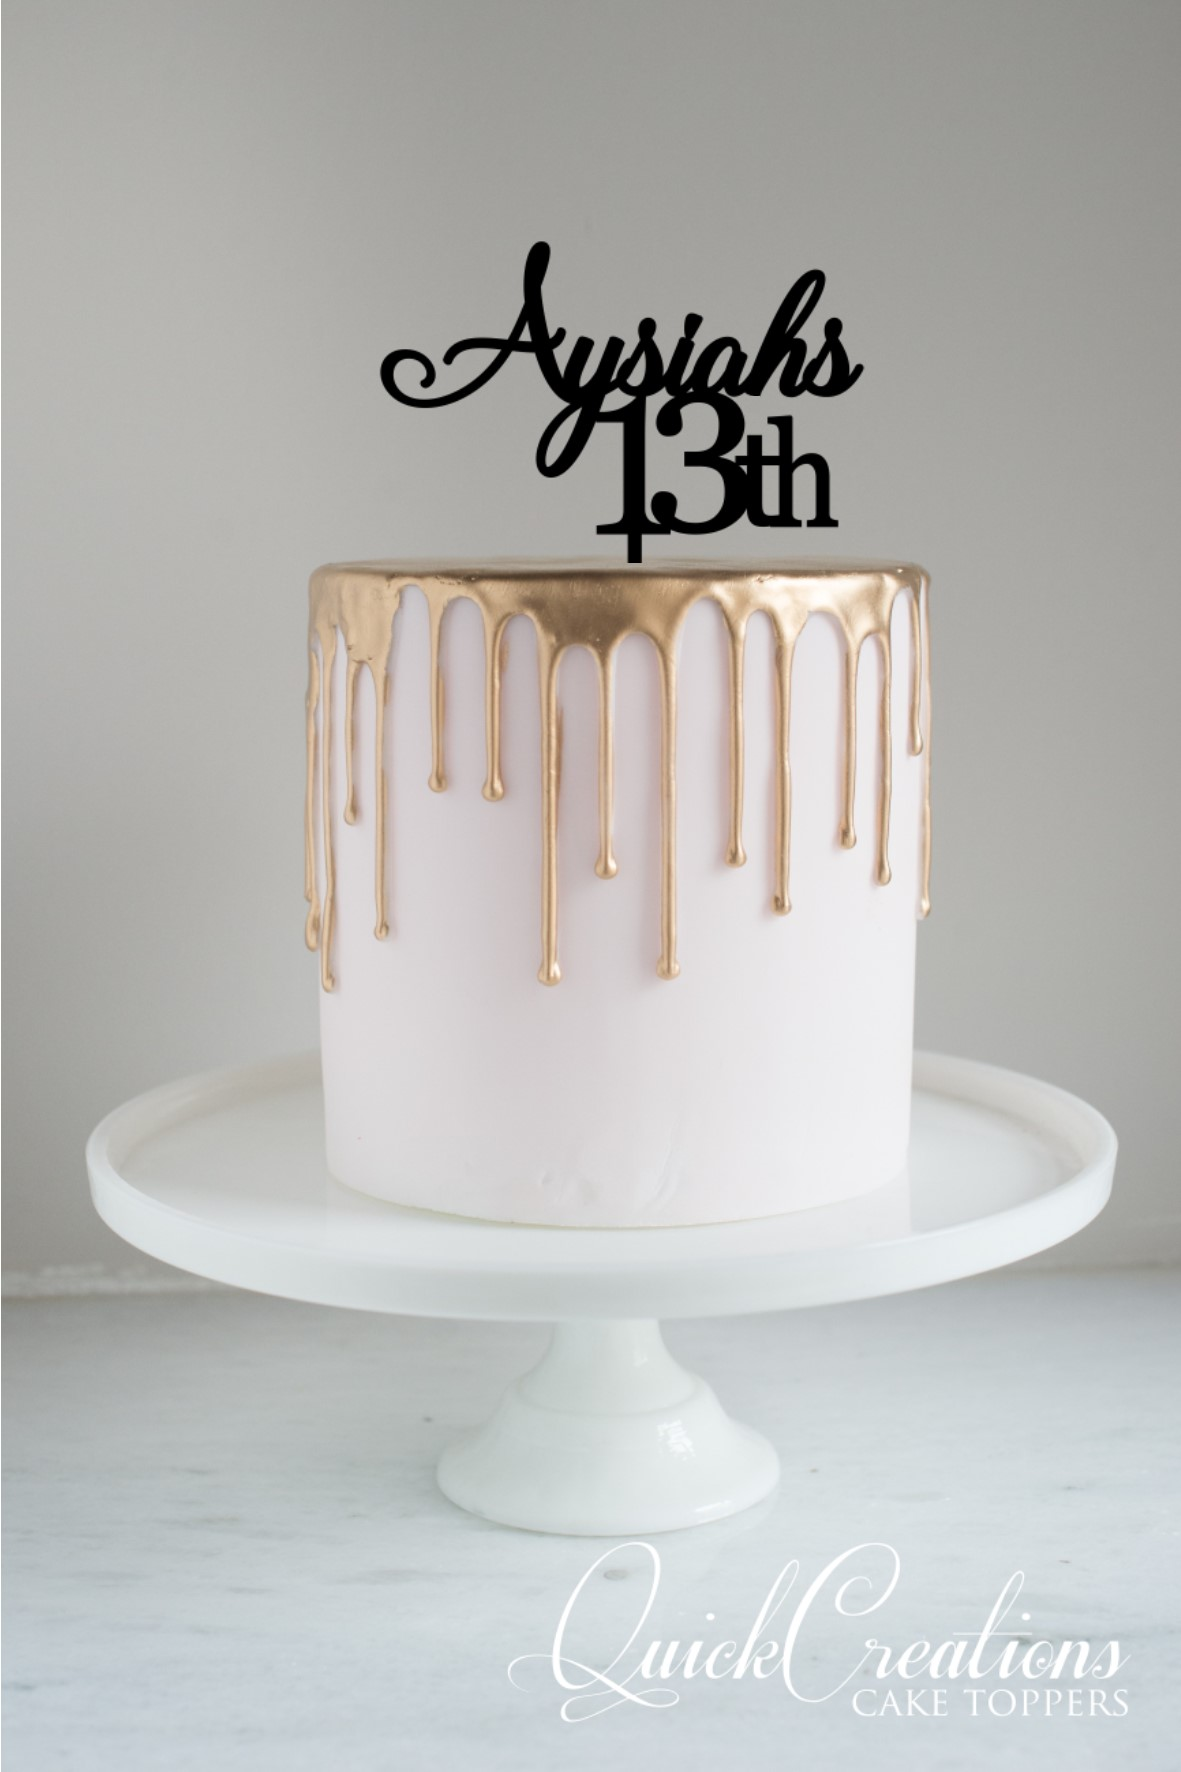 Quick Creations Cake Topper - Asyiha 13